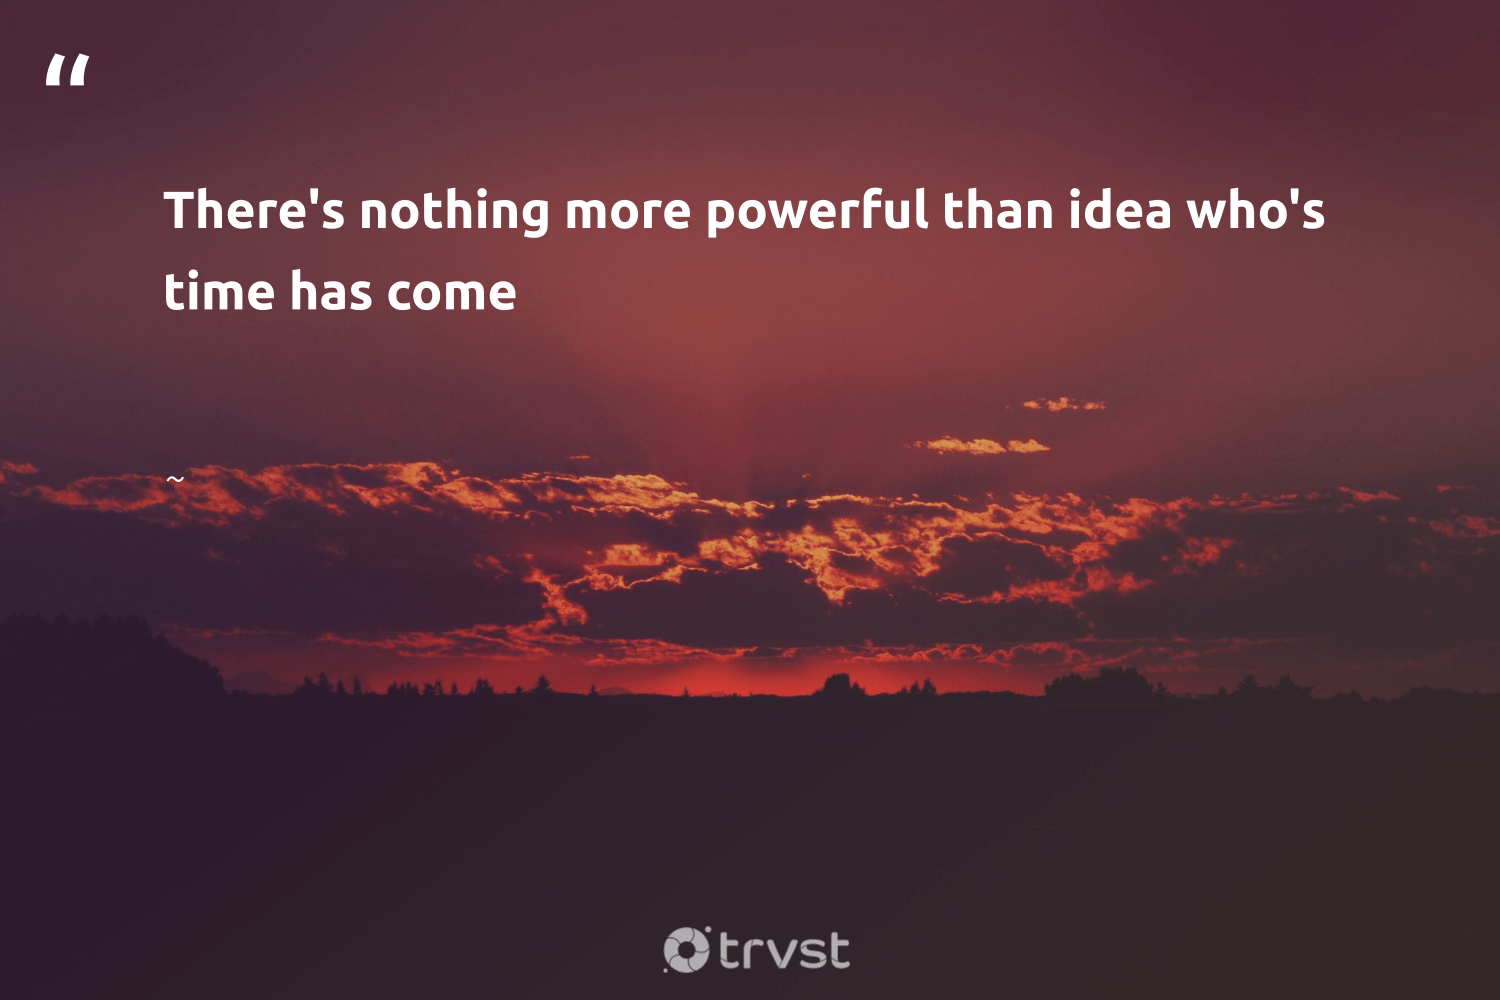 """There's nothing more powerful than idea who's time has come""  -  #trvst #quotes #nevergiveup #socialchange #begreat #bethechange #togetherwecan #socialimpact #mindset #collectiveaction #health #gogreen"